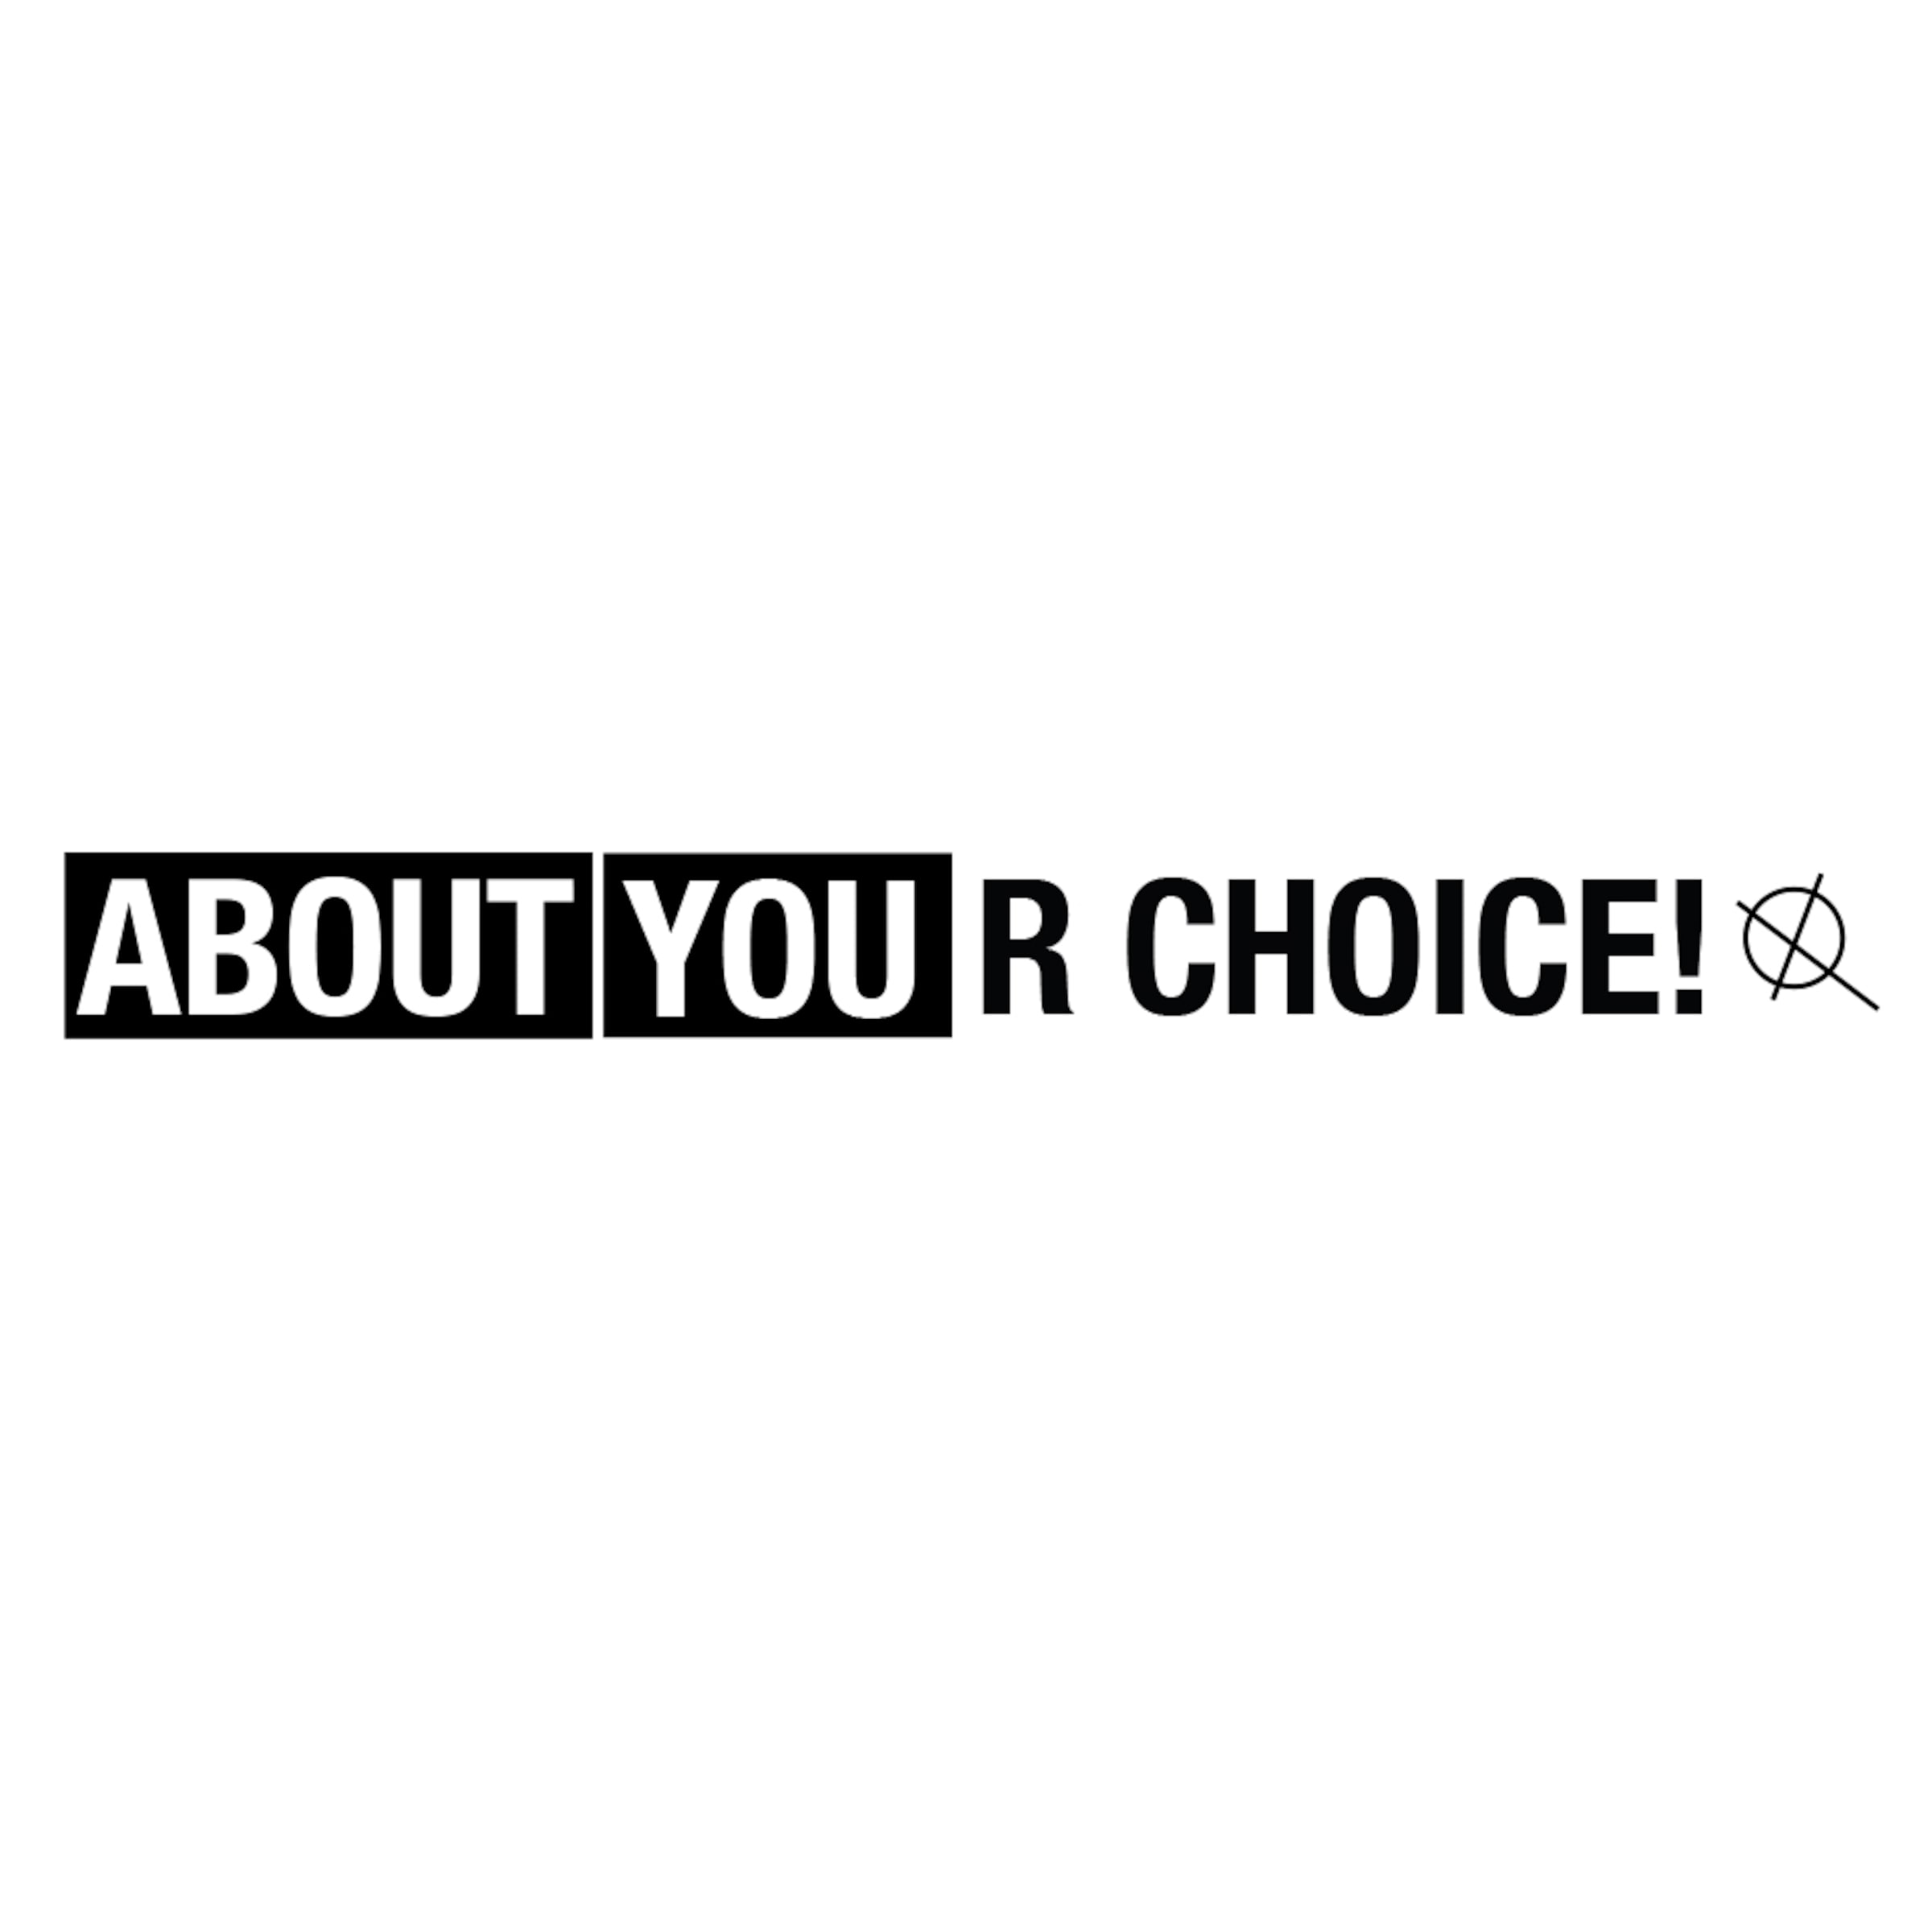 About Your Choice